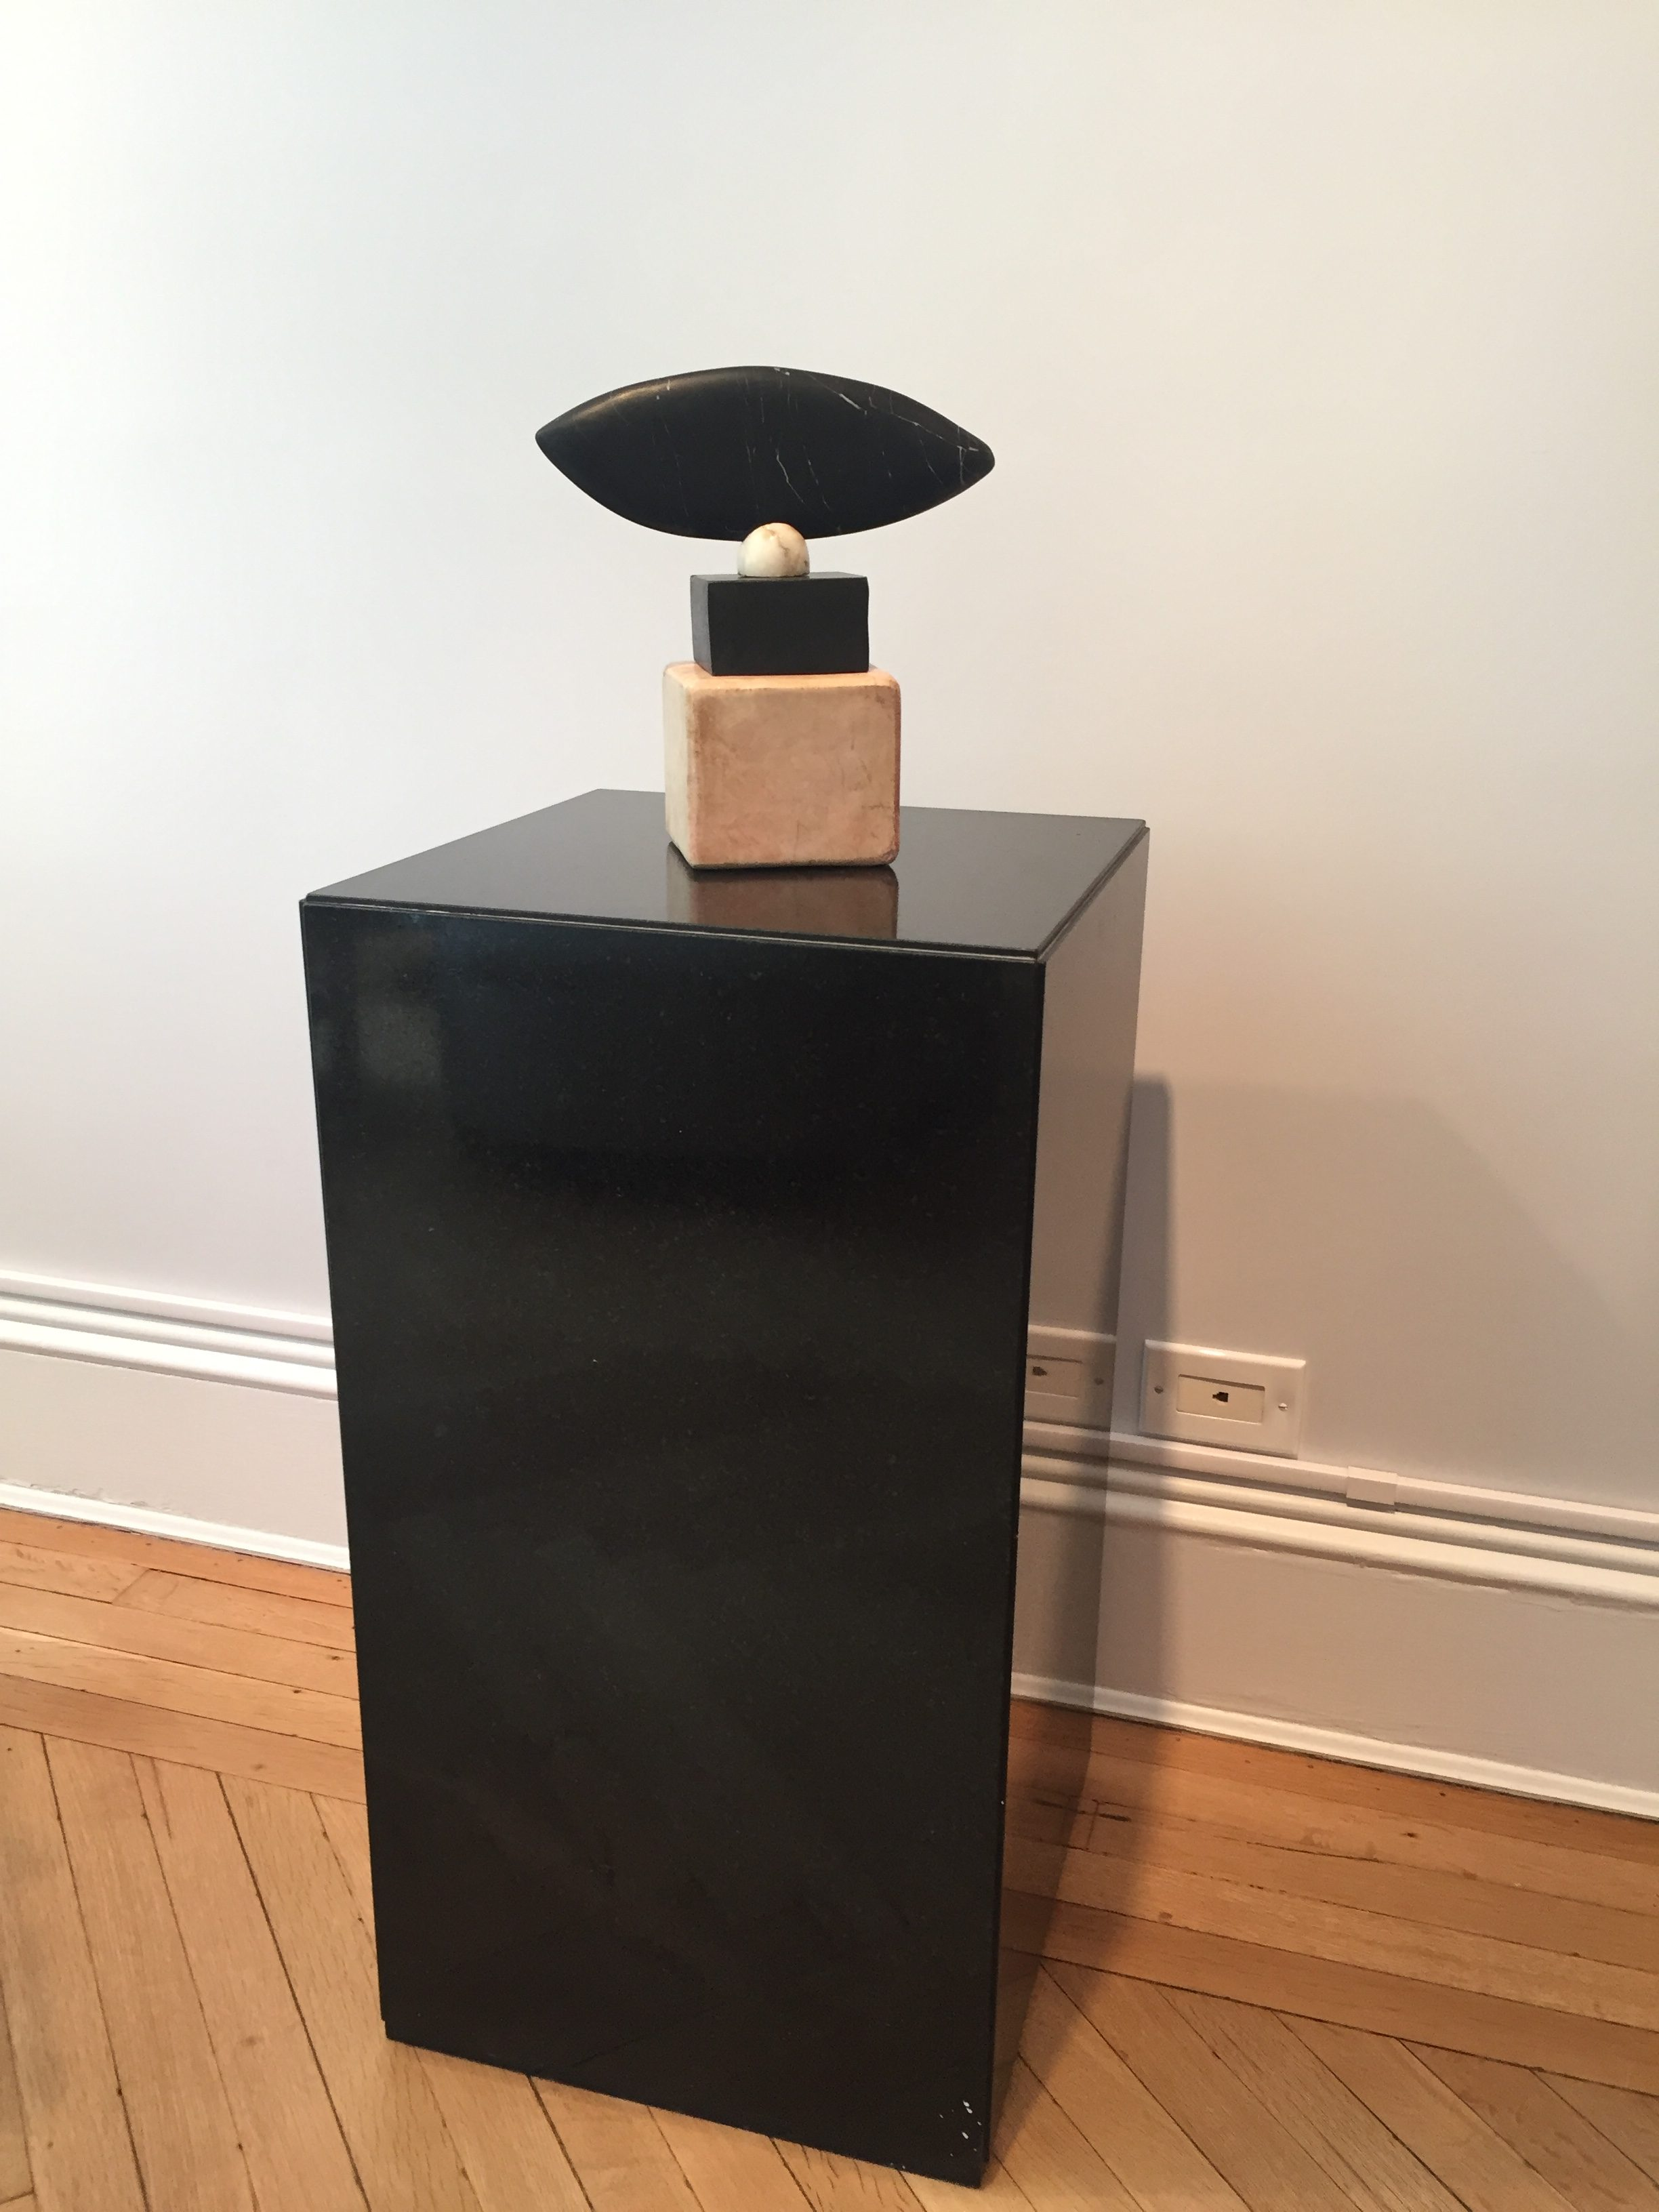 French Collector Sues Dealer, Insurance Companies, Alleging Damage to $22.5 M. Brancusi Sculpture